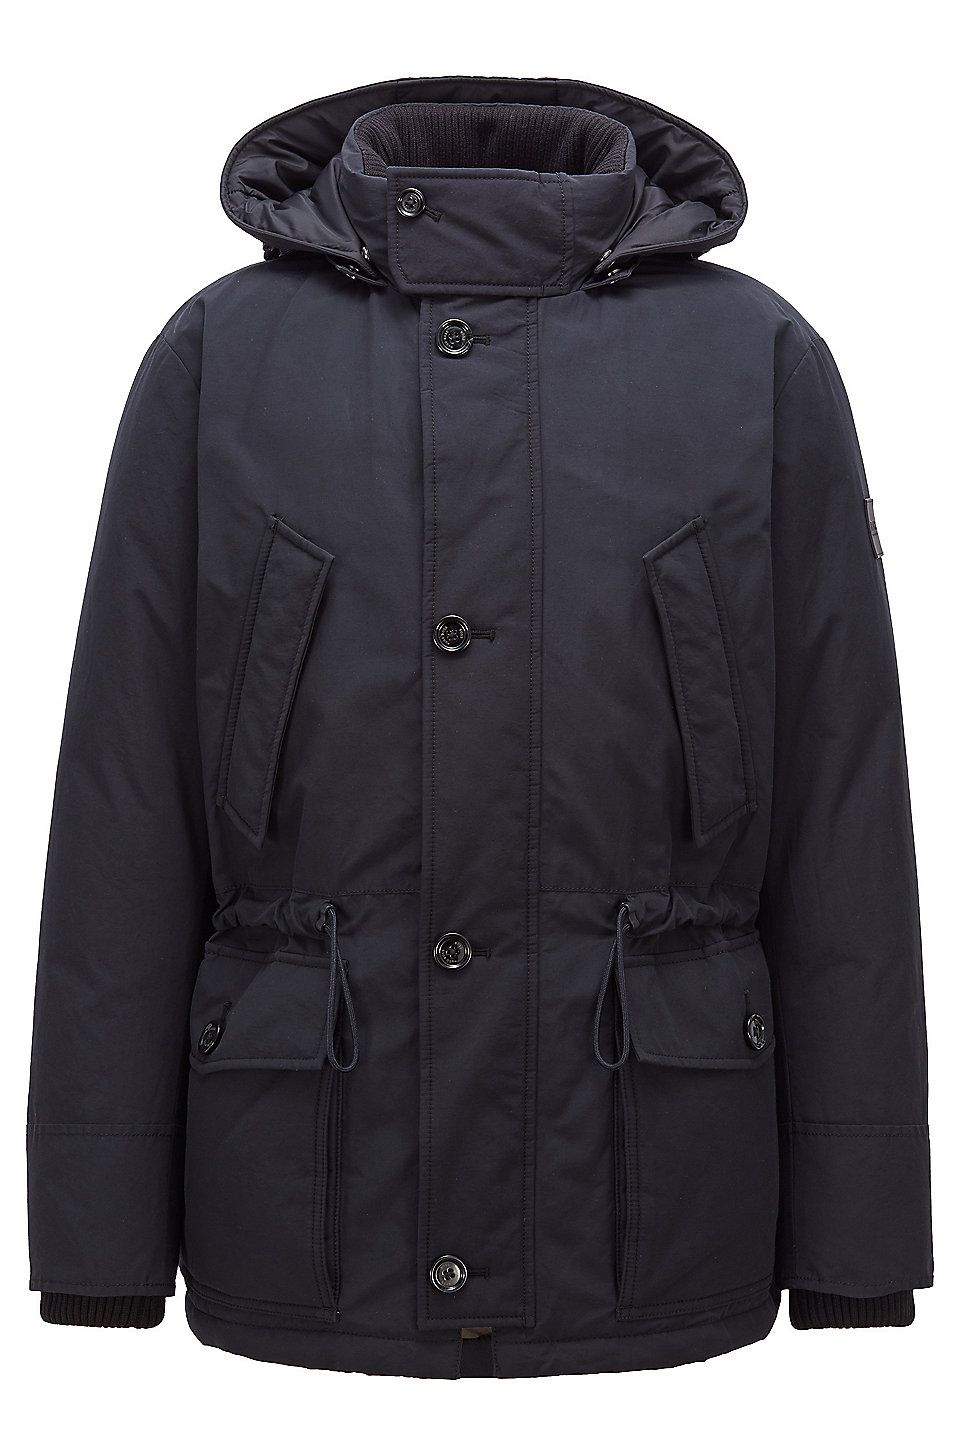 74e5aa587 HUGO BOSS Relaxed-fit down jacket with waxed cotton-blend outer ...